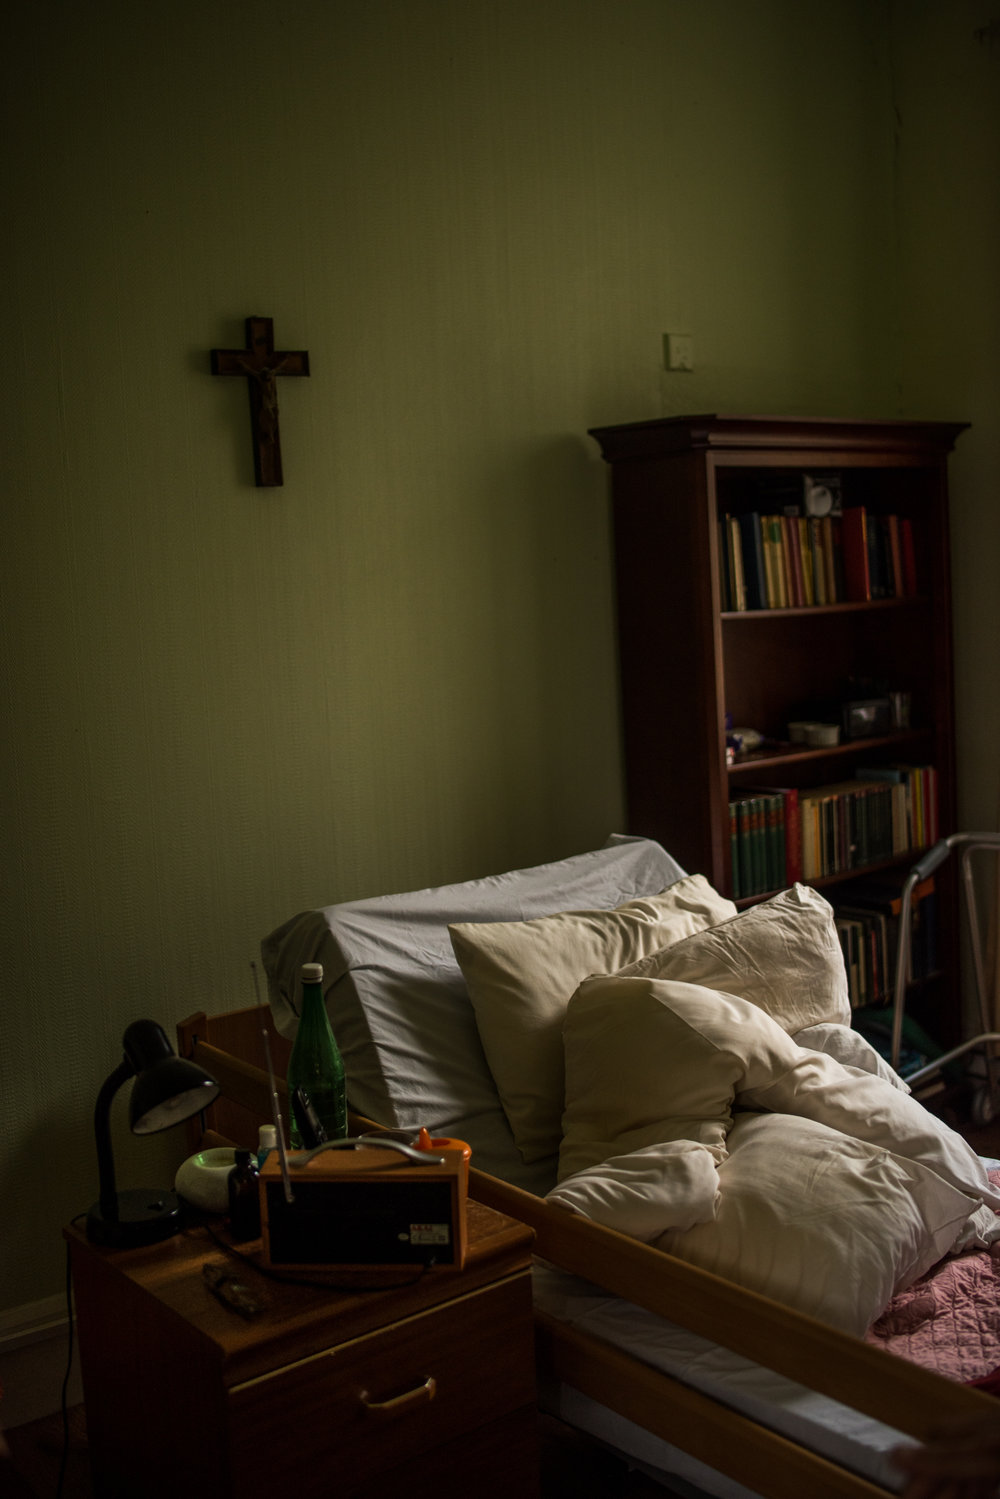 A bed, still warm, in the infirmary from the previous Abbot who was buried the day before I got to the Abbey. His personal items are still on the table next to the bed and the room smelled of mouthwash